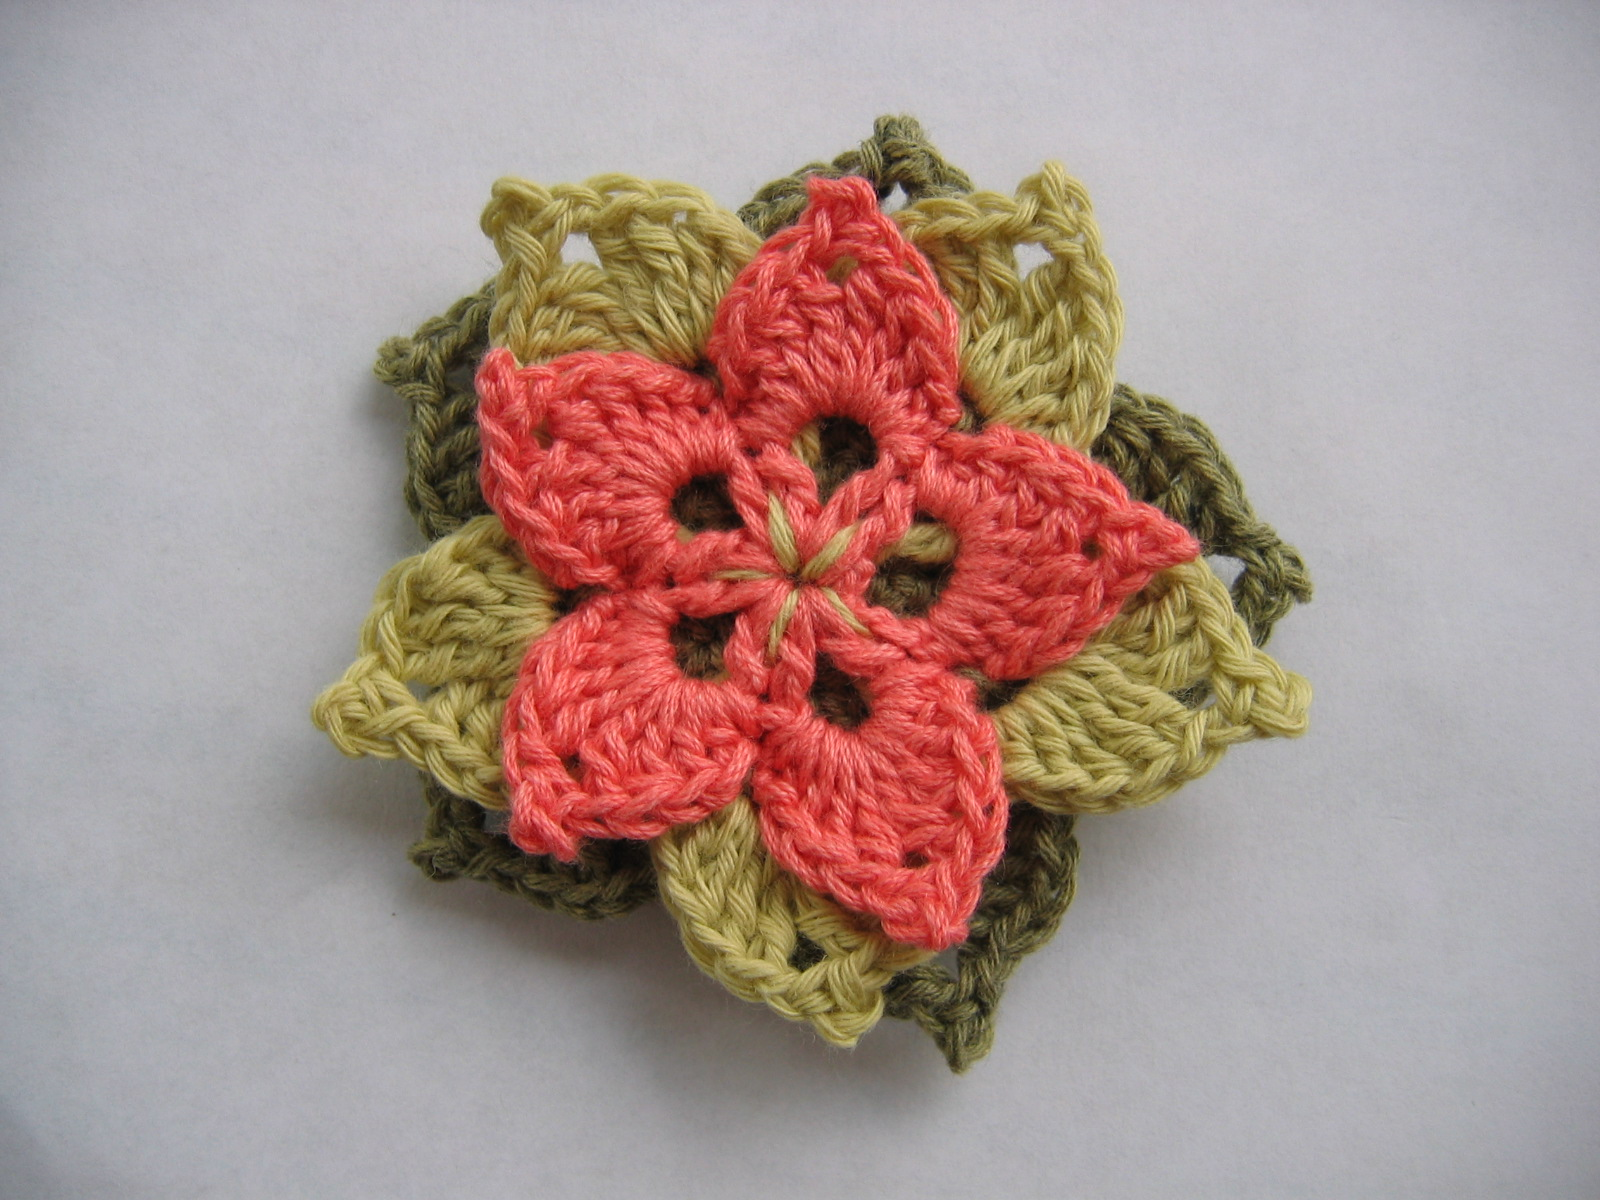 Annette Petavy Design Newsletter May 2010 A Crocheted